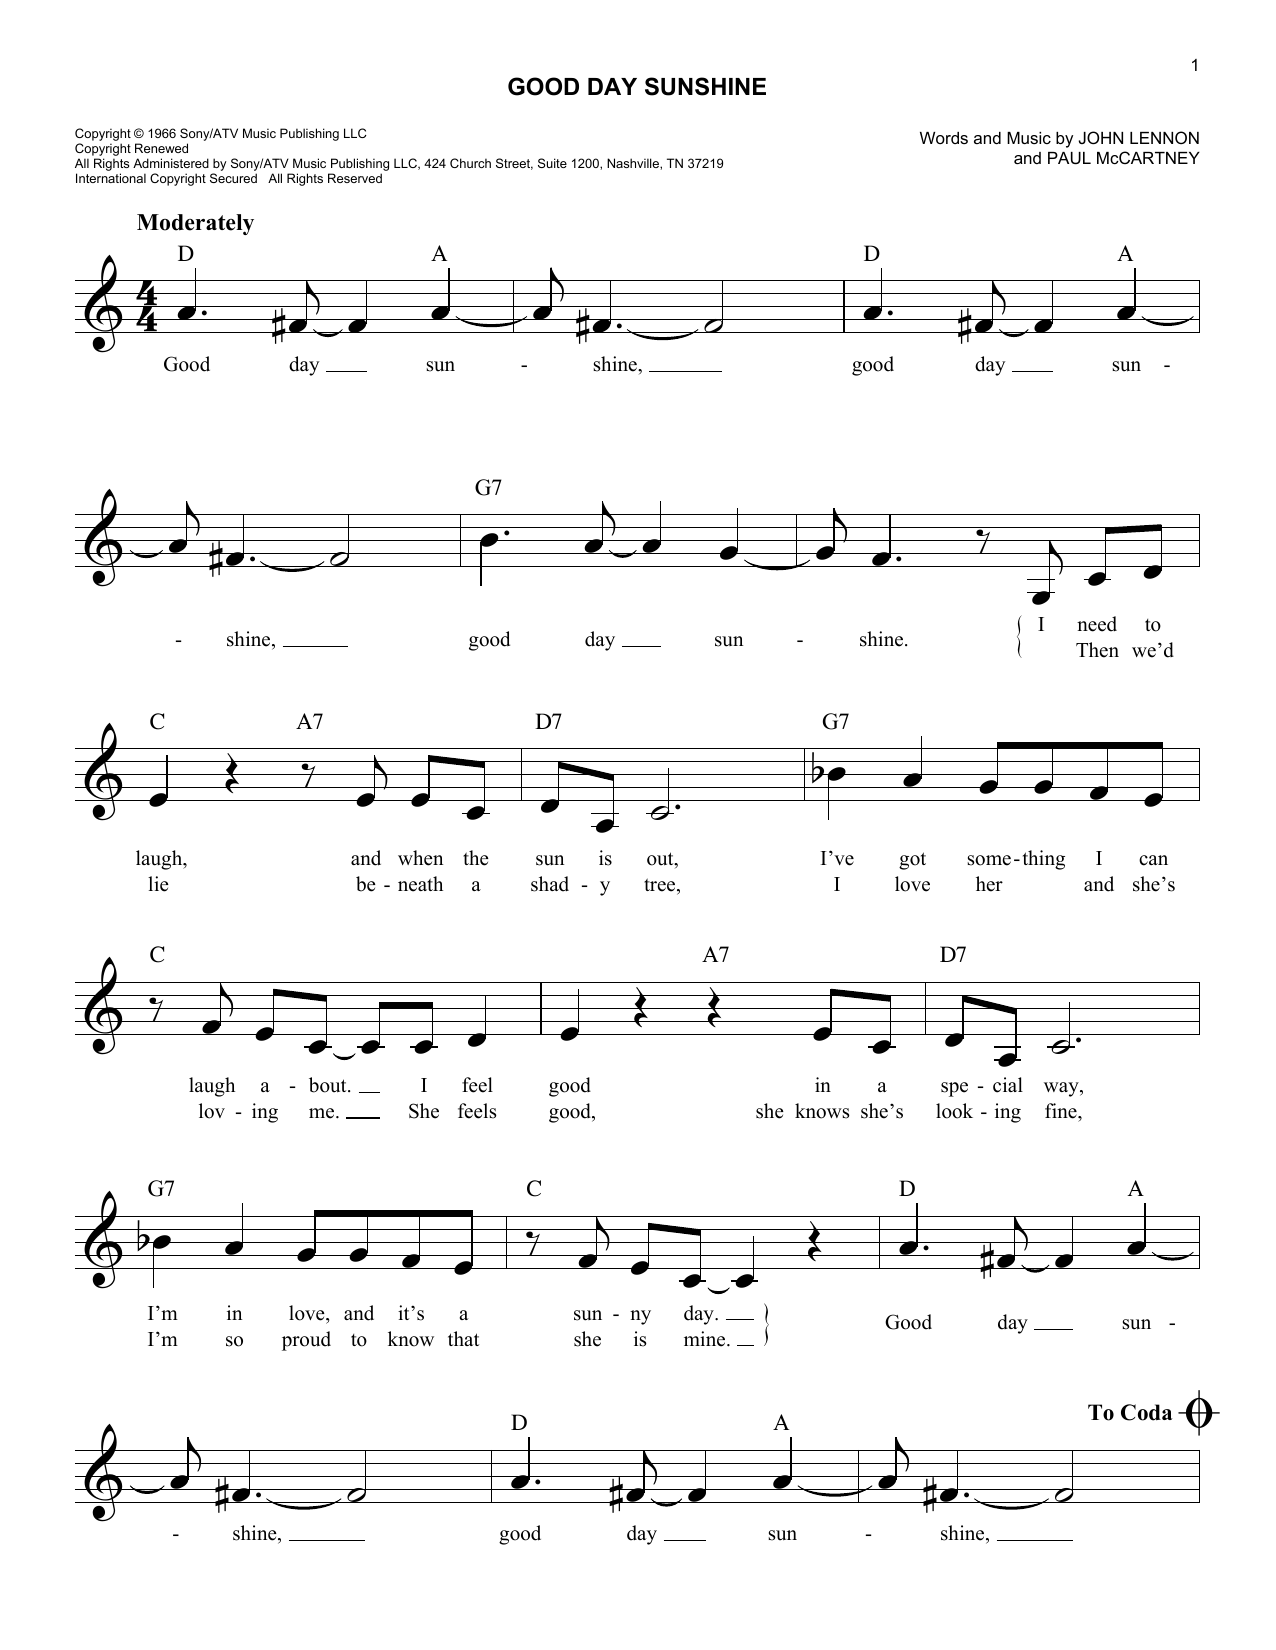 Good Day Sunshine Sheet Music